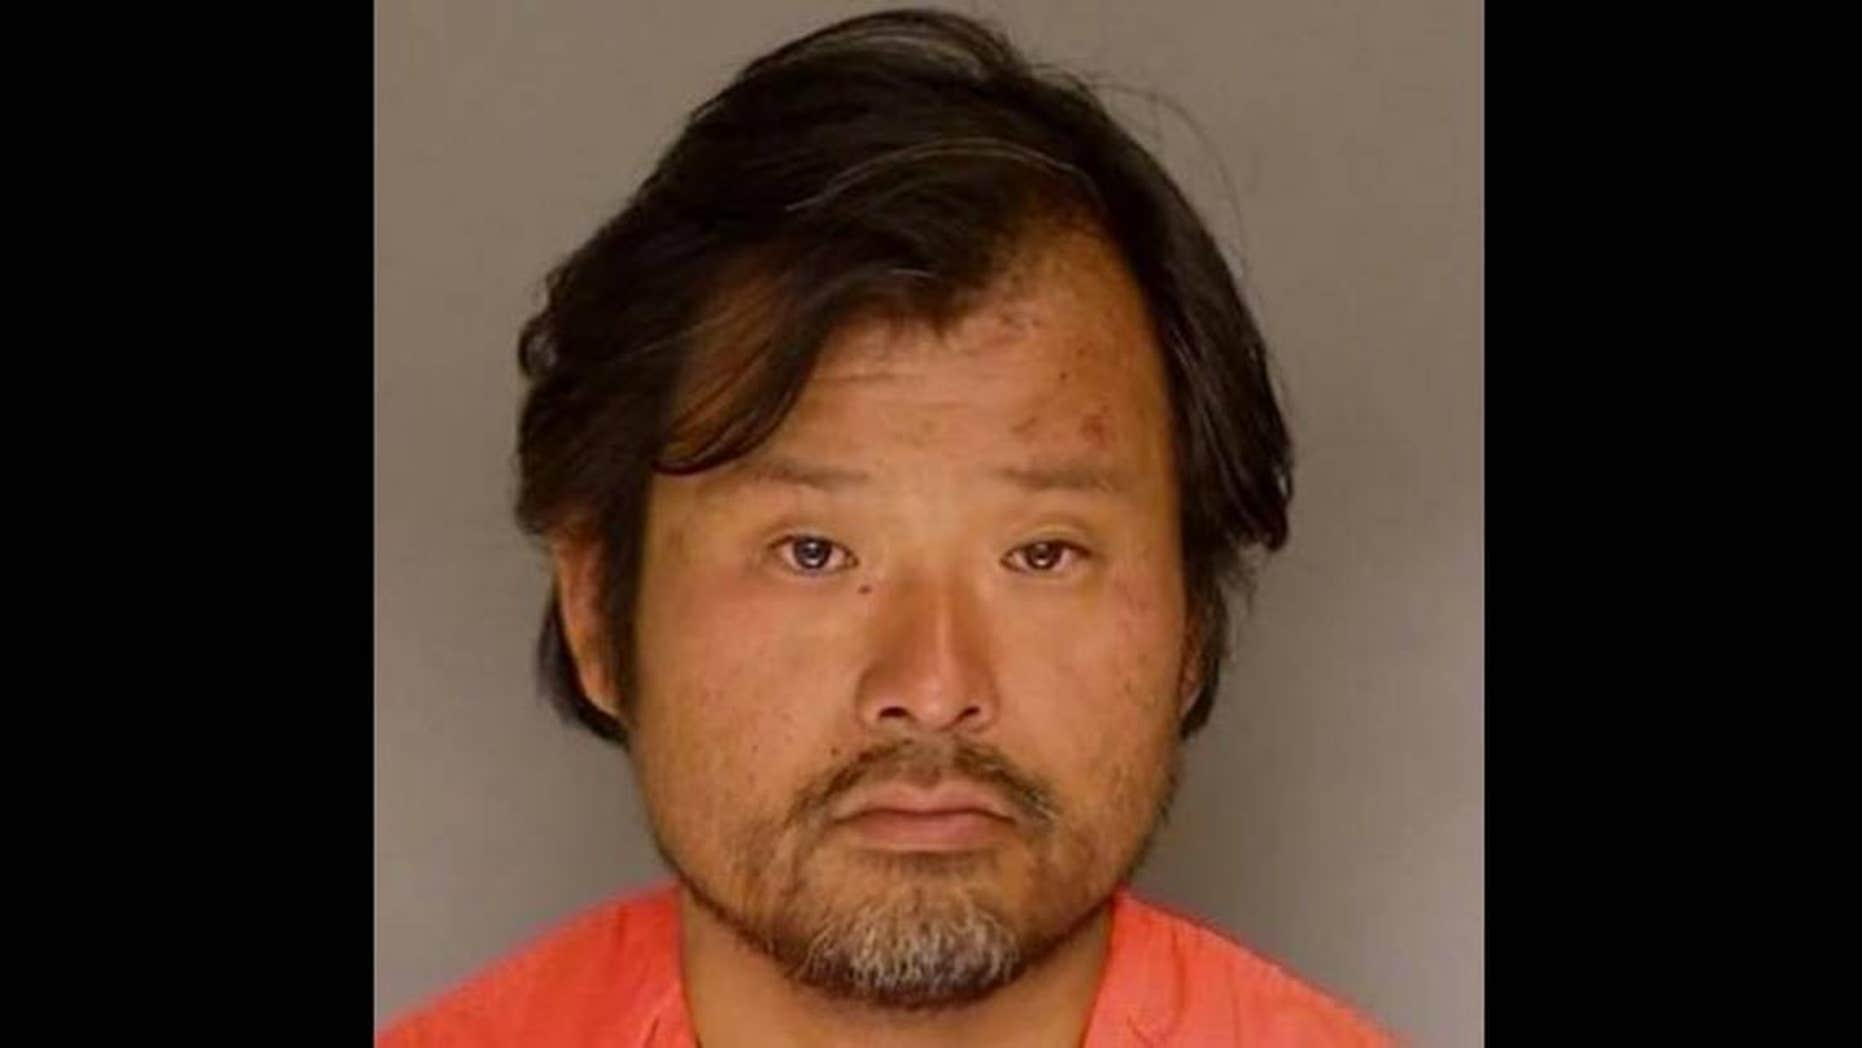 Daisuke Muro, 40, was charged with attempted sexual assault and attacking a police officer, authorities said.